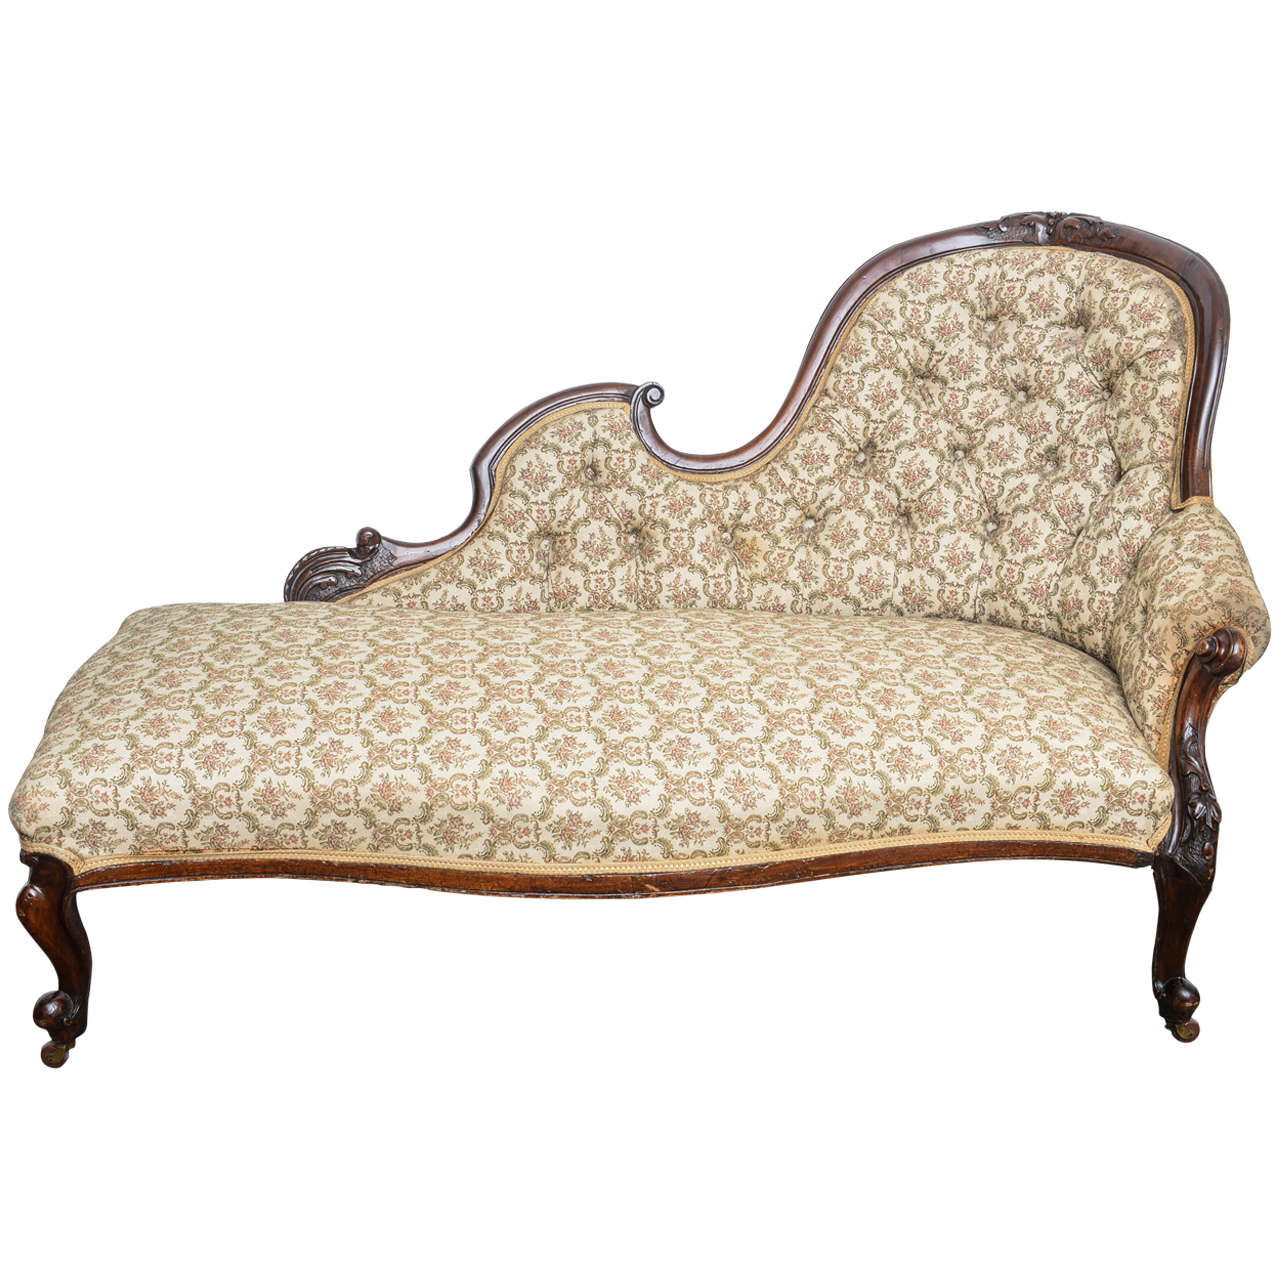 superb english walnut cabriolet legs chaise longue at 1stdibs. Black Bedroom Furniture Sets. Home Design Ideas